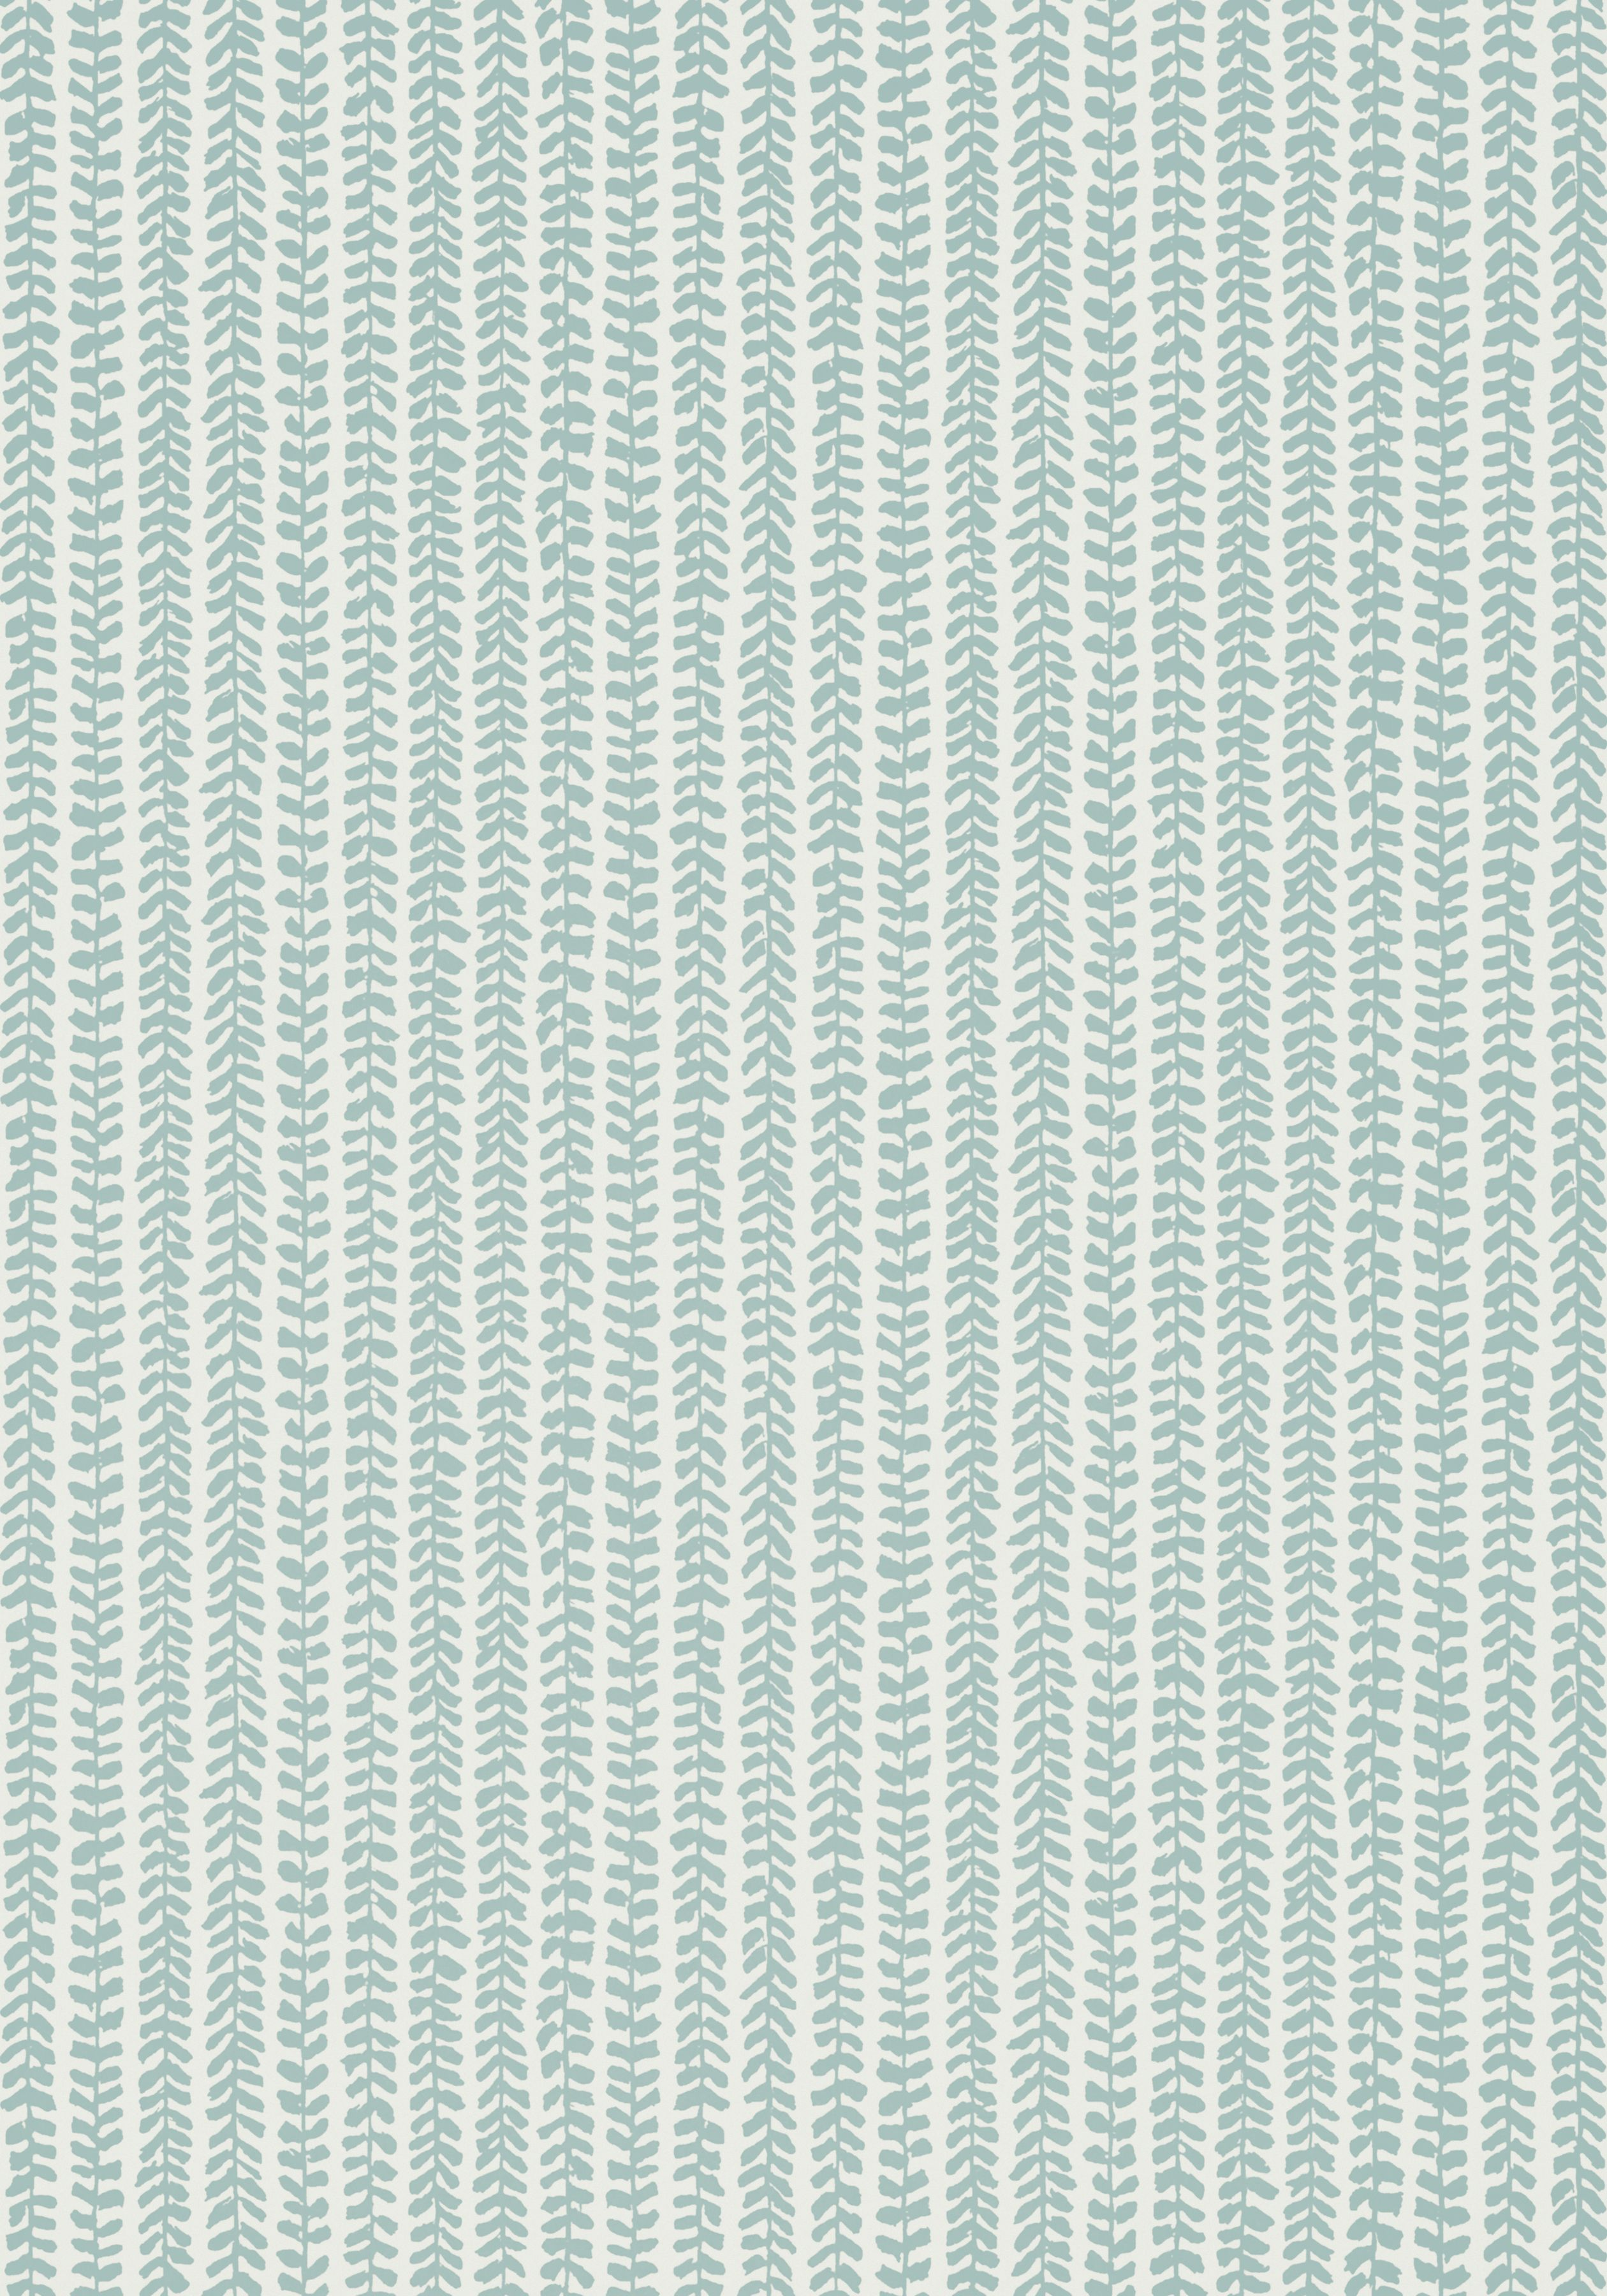 NARRAGANSETT Aqua T Collection Trade Routes from Thibaut